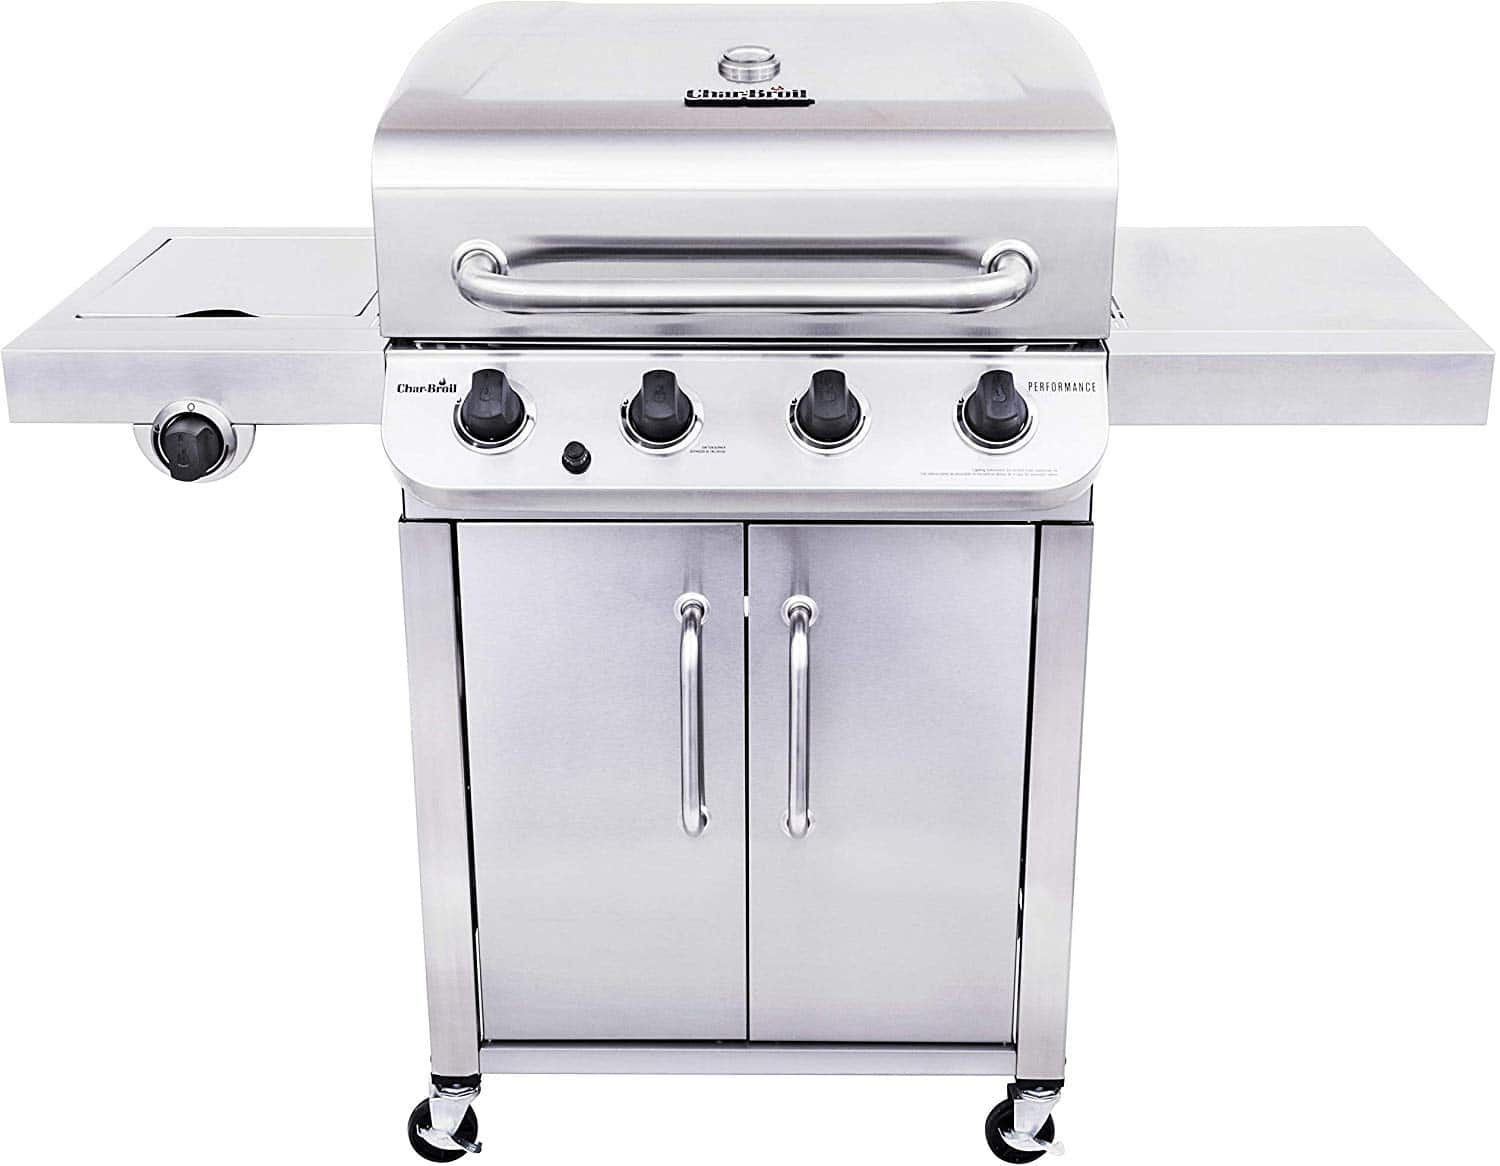 Char-Broil 463375919 Performance Stainless Steel 4-Burner Cabinet Style Gas Grill $279.99 - Amazon